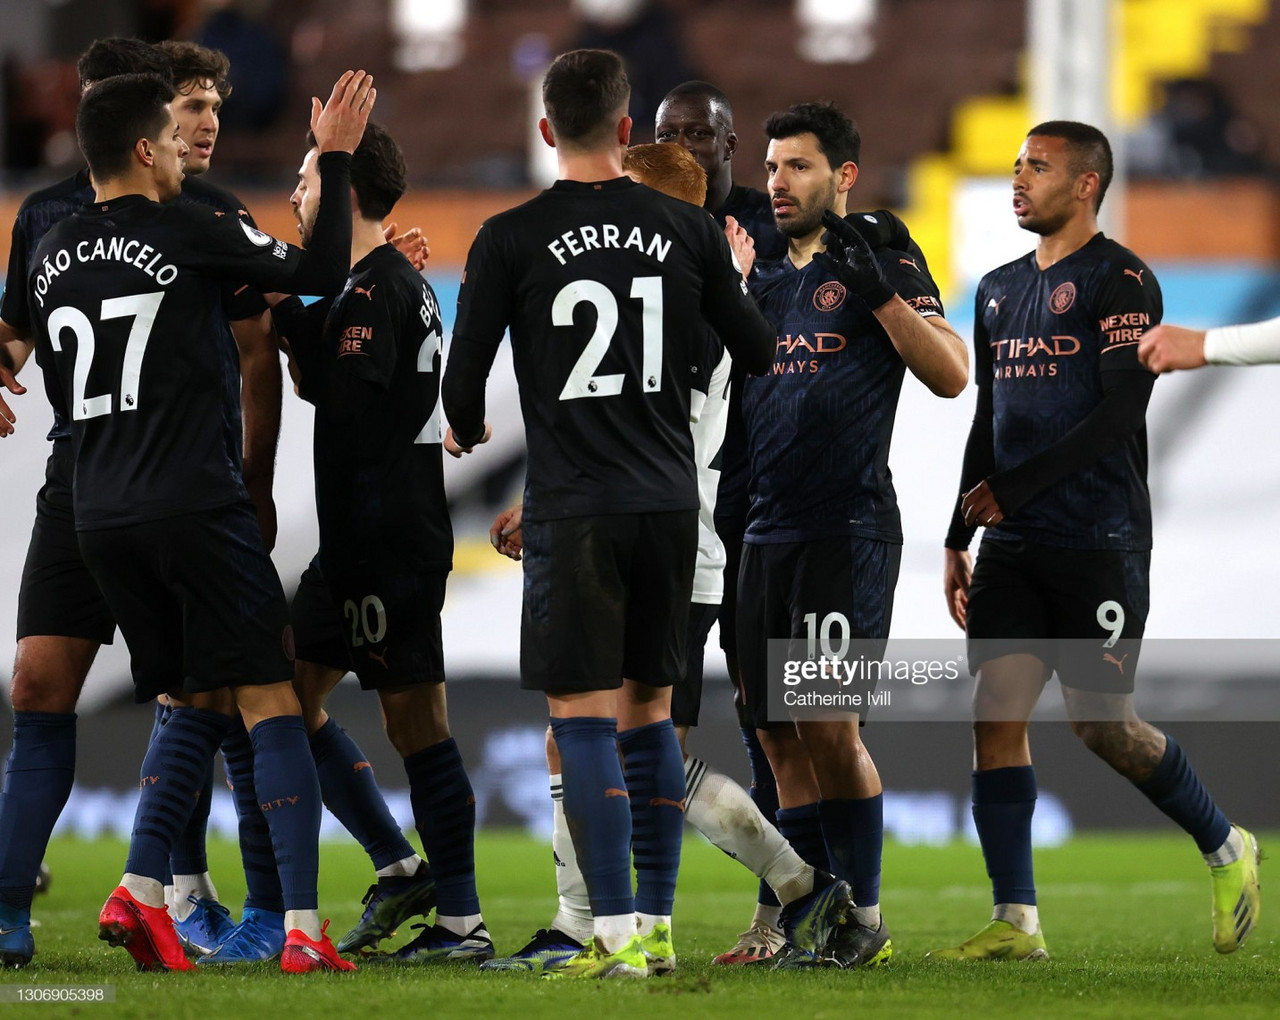 Fulham 0-3 Manchester City: Visitors waltz to comfortable victory